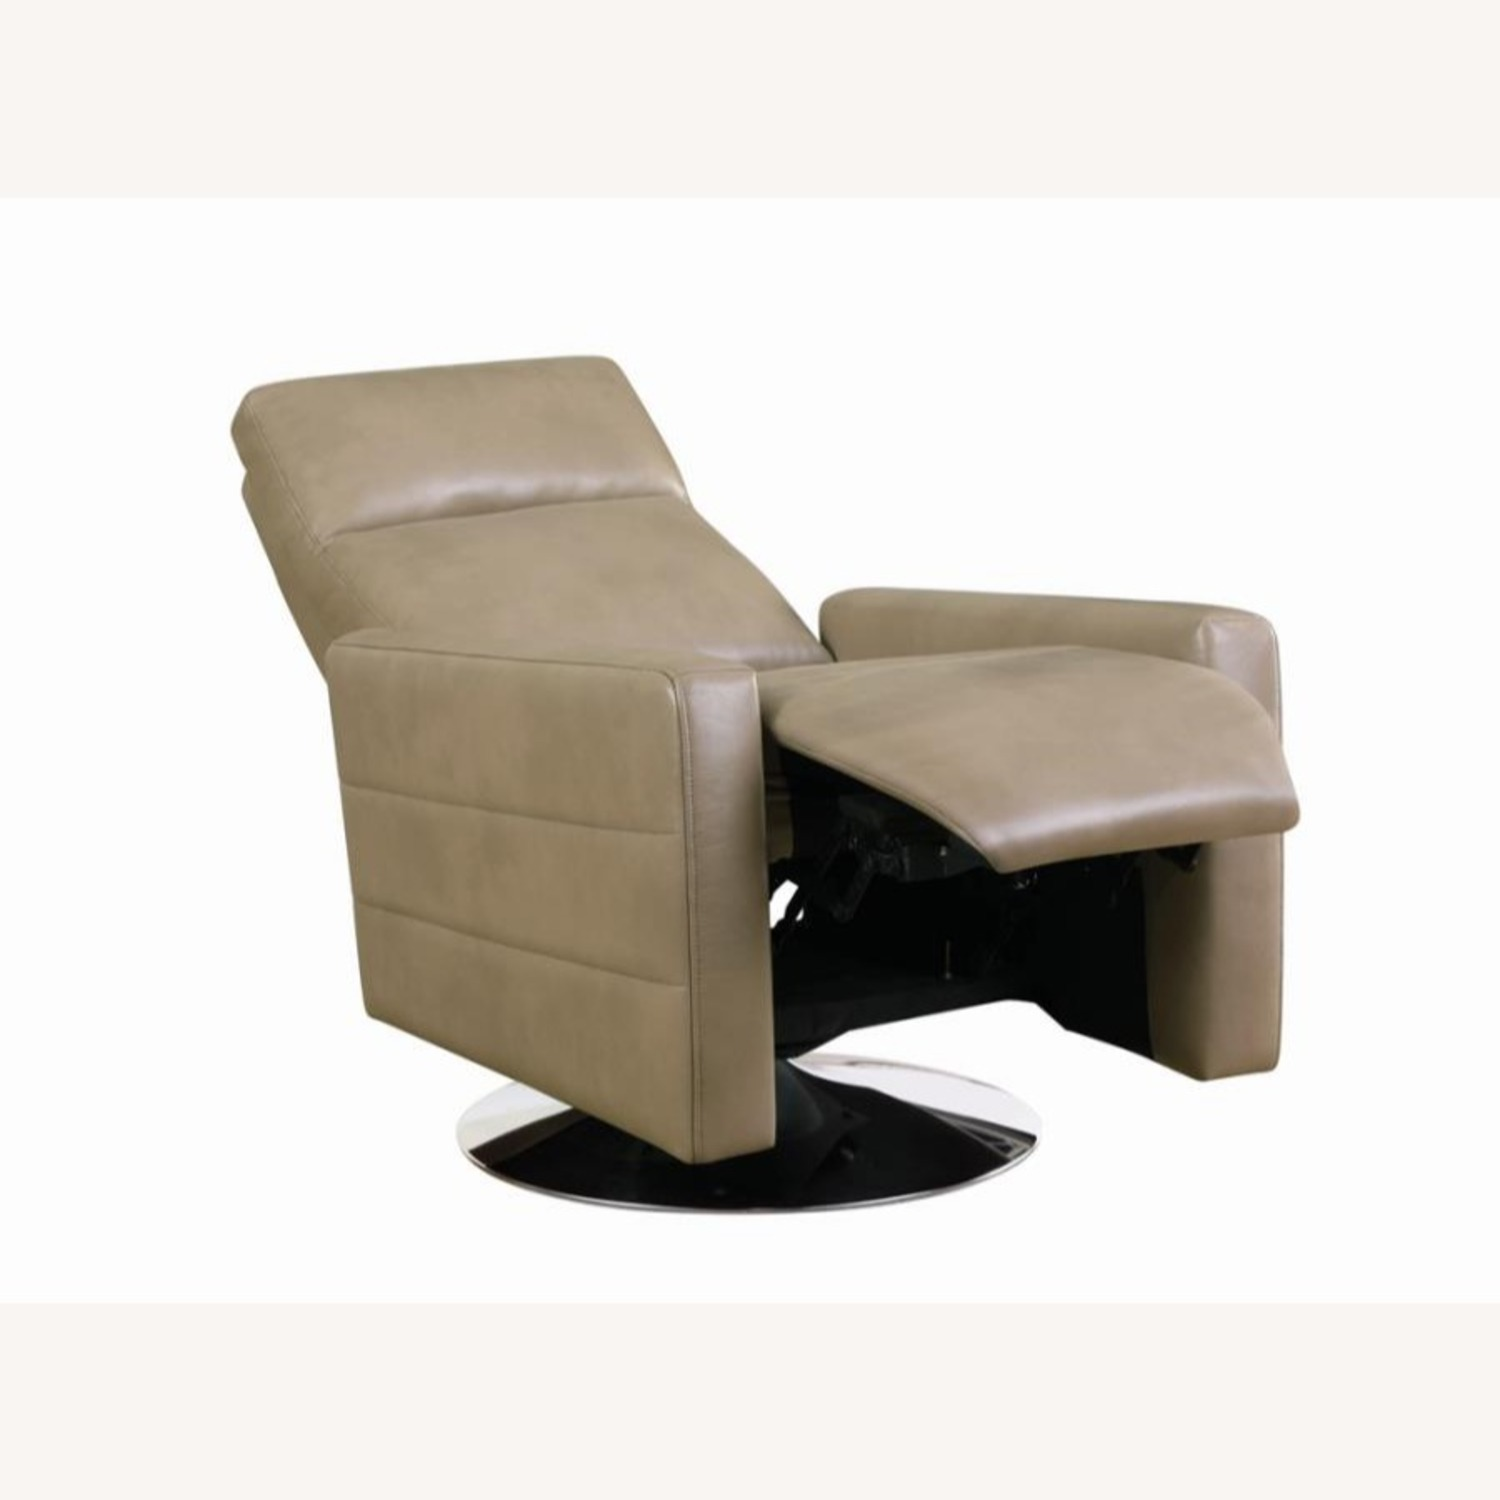 Swivel Recliner Upholstered In Taupe Performance - image-1